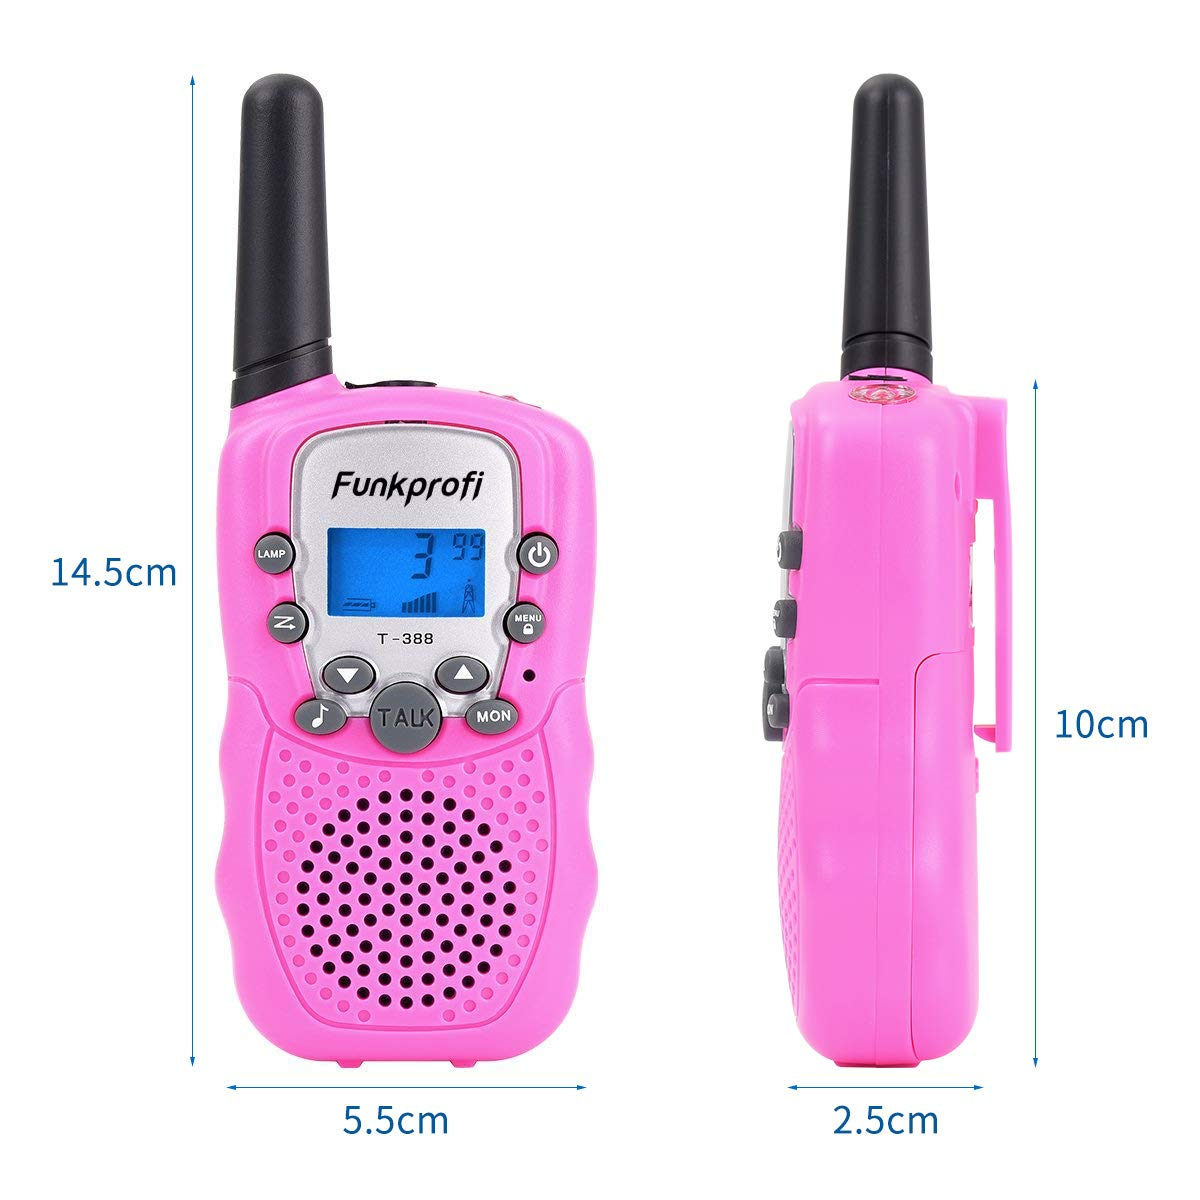 Funkprofi Walkie Talkies for Kids 22 Channels Long Range Rechargeable Walkie Talkies with Battery and Charger, Gift for Boys and Girls, 1 Pair (Pink) by Funkprofi (Image #2)